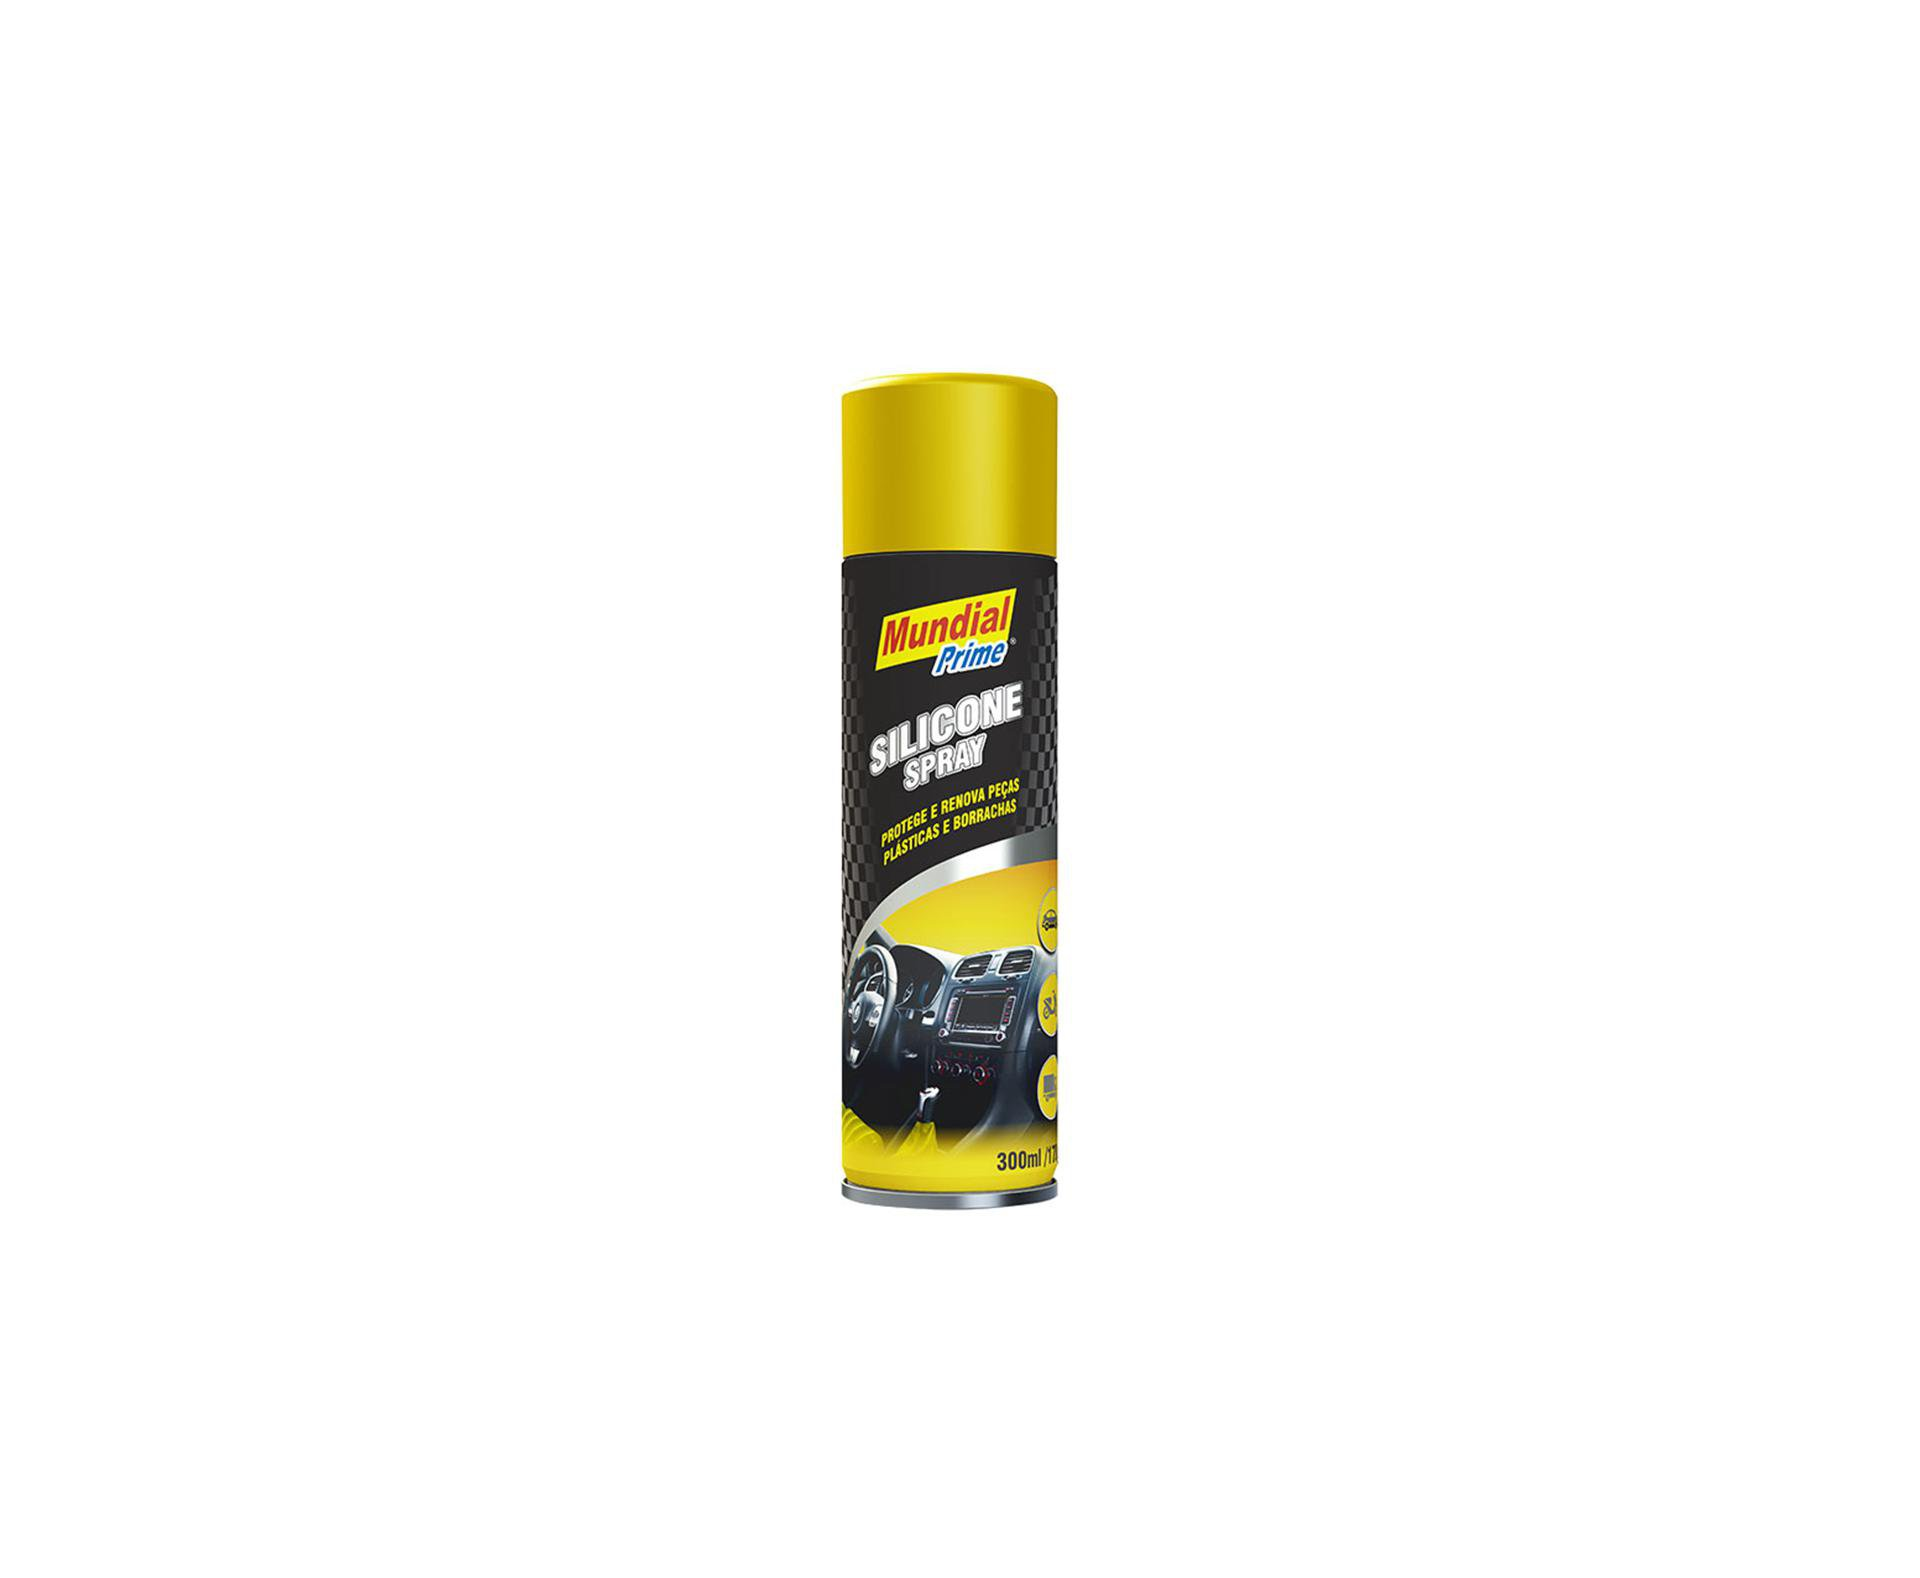 Silicone Spray 300ml - Mundial Prime